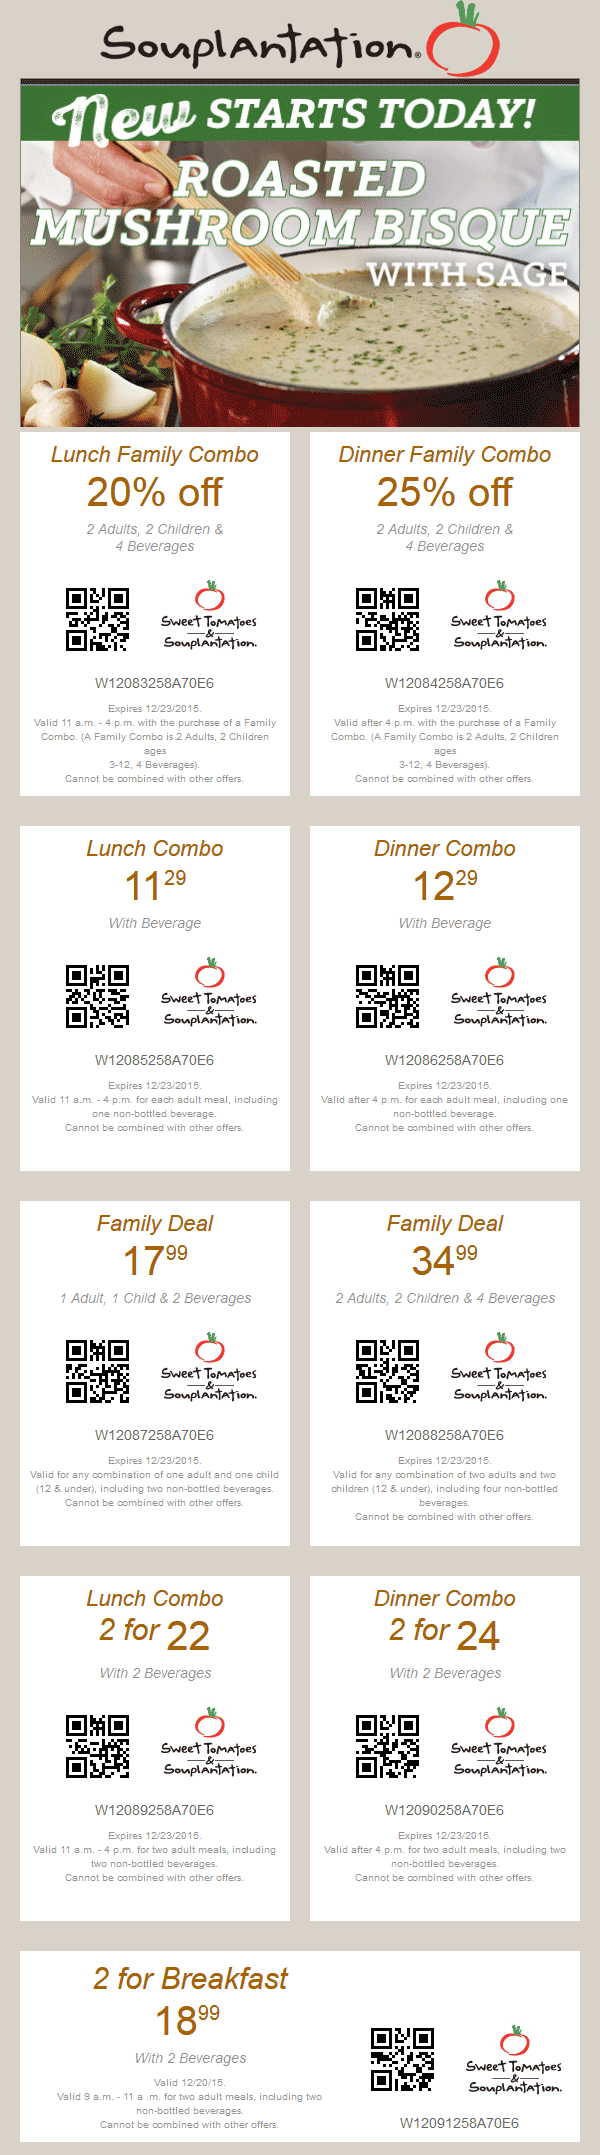 Sweet Tomatoes Coupon October 2016 20% off lunch, 25% off dinner at Souplantation & Sweet Tomatoes